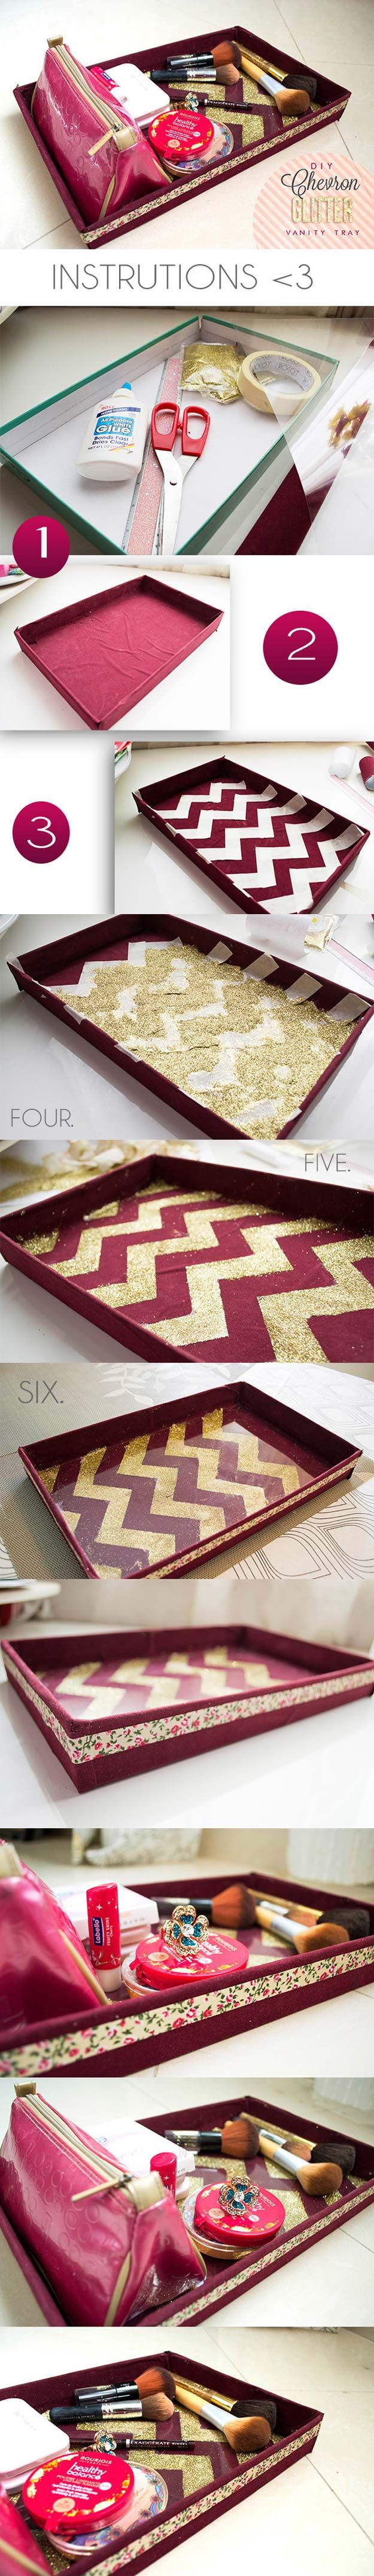 DIY Makeup Storage and Organizing - DIY Chevron Glitter Vanity Tray - Awesome Ideas and Dollar Stores Hacks for Some Seriously Great Organizers For Small Spaces - Box and Vanity Ideas as well as Easy Ideas for Jars and Drawers, Cheap Wall Shoebox Containers and Quick Holders with Cardboard - thegoddess.com/DIY-Makeup-Storage